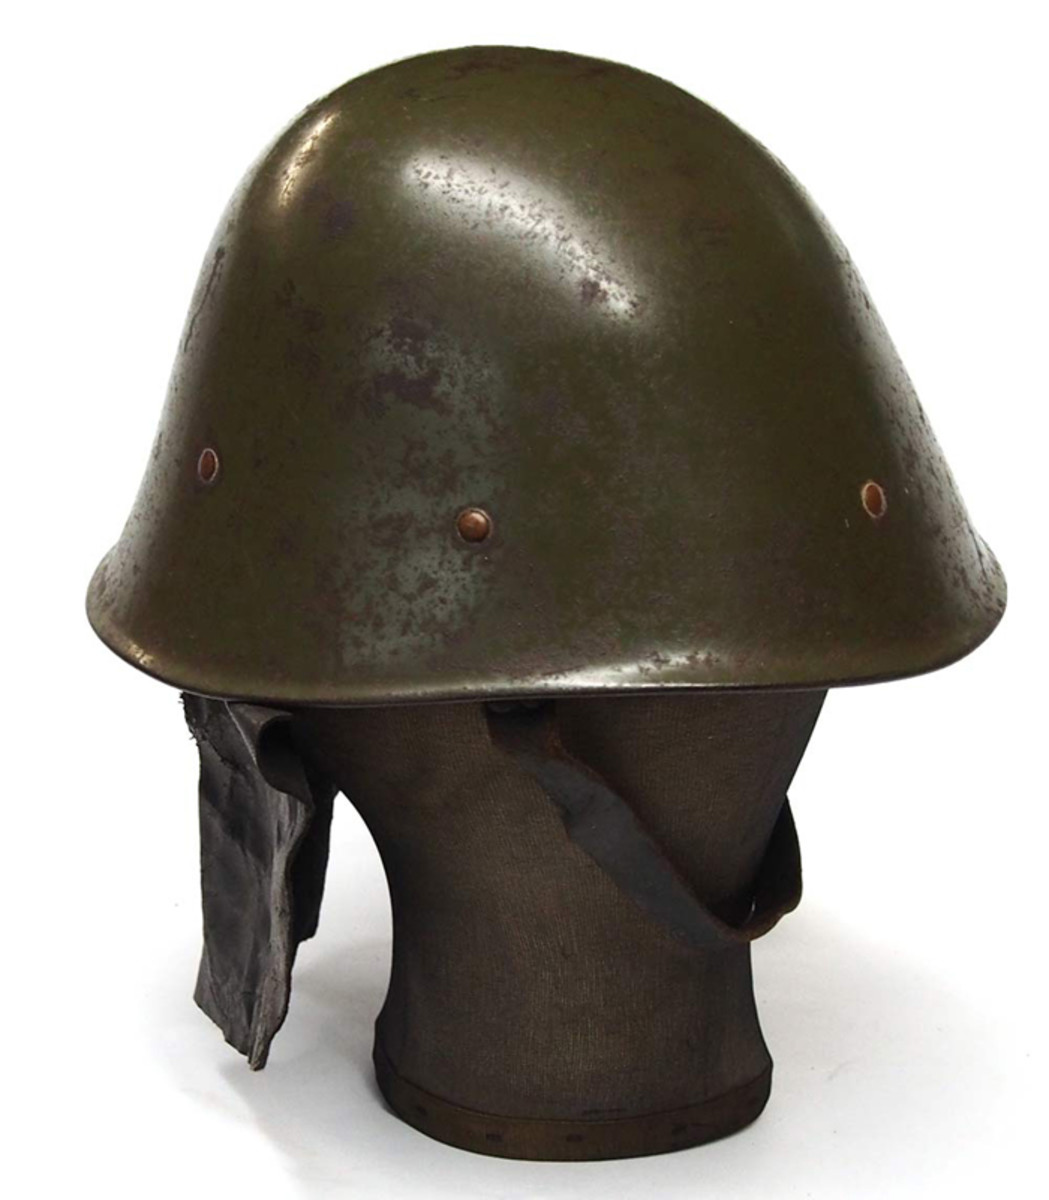 The profile of the steel helmet shows how the leather neck curtain shielded the wearer's neck — even though leather seemed a poor choice of materials to use in tropical conditions!